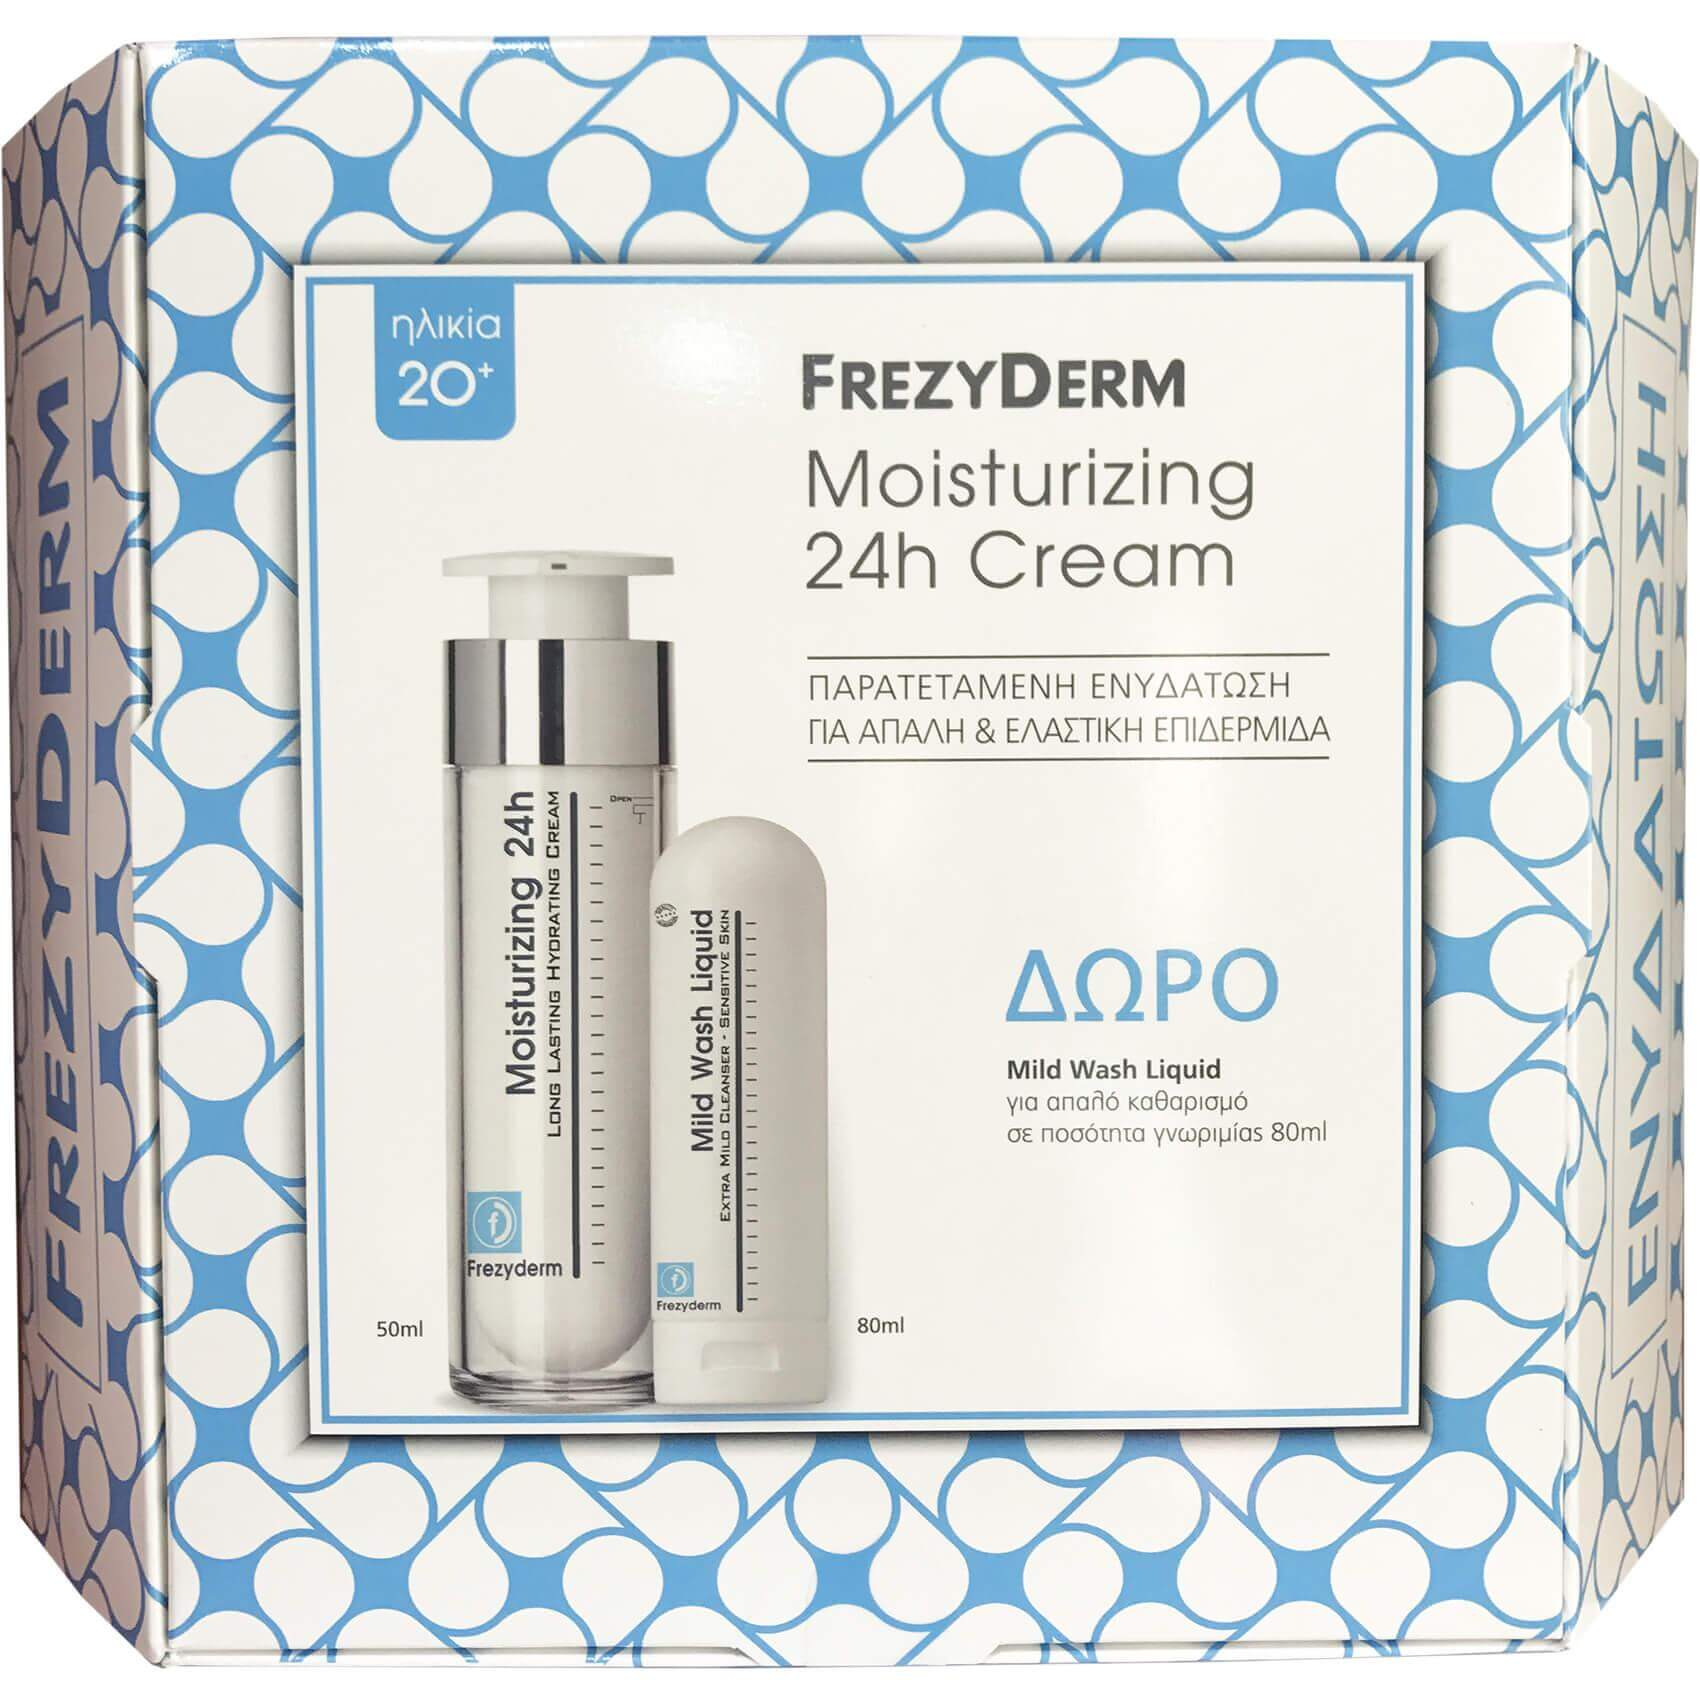 Frezyderm Πακέτο Προσφοράς Moisturizing 20+ 24h Cream 50ml & Δώρο Mild Wash Liquid 80ml